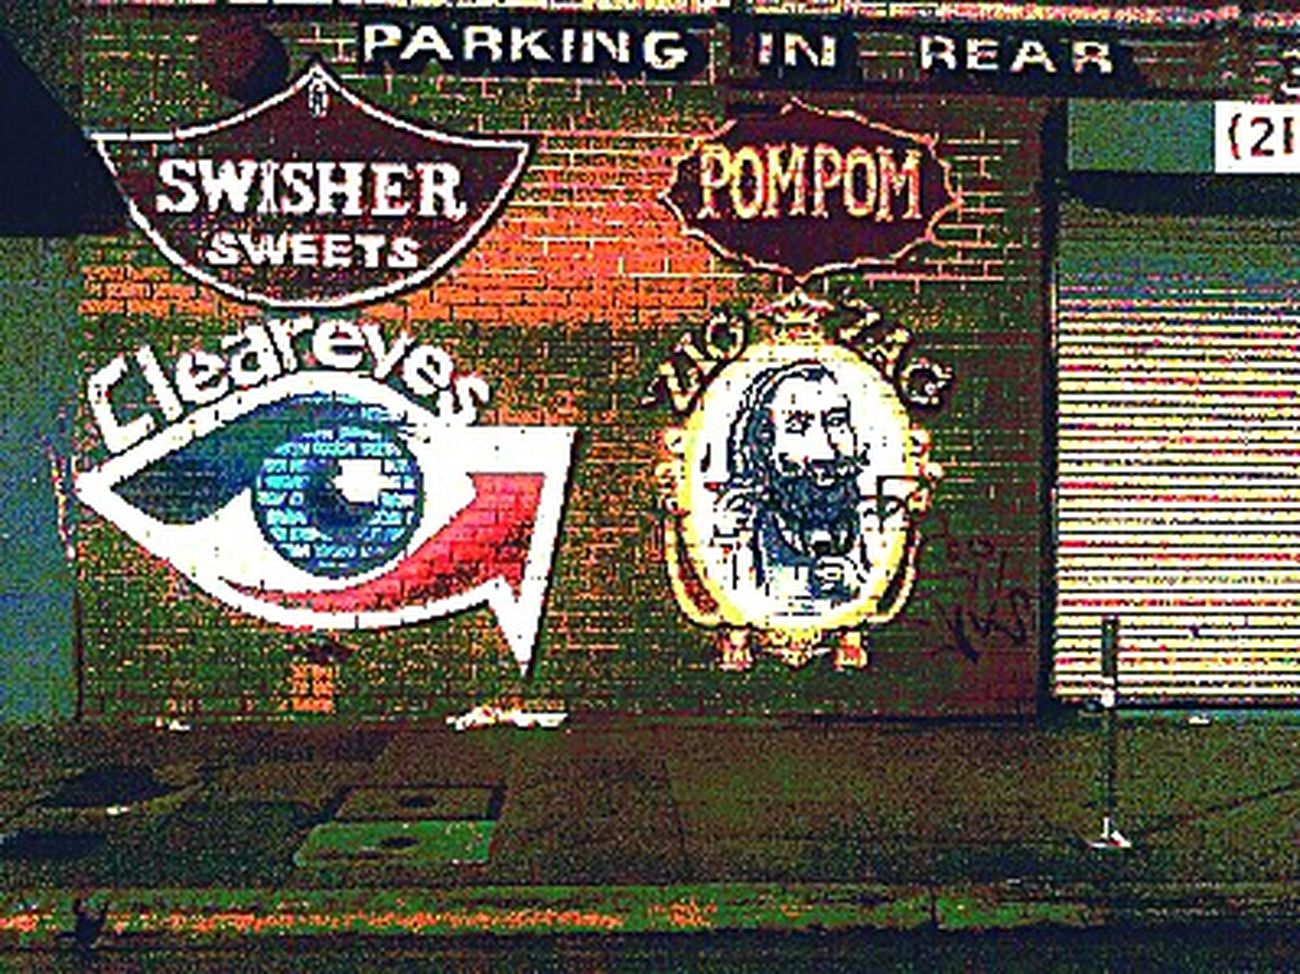 Streetphotography Wall Art Pompom Swisher Sweets Zig Zag Clear Eyes Cleareyes Parking In Rear Brickwall Logos